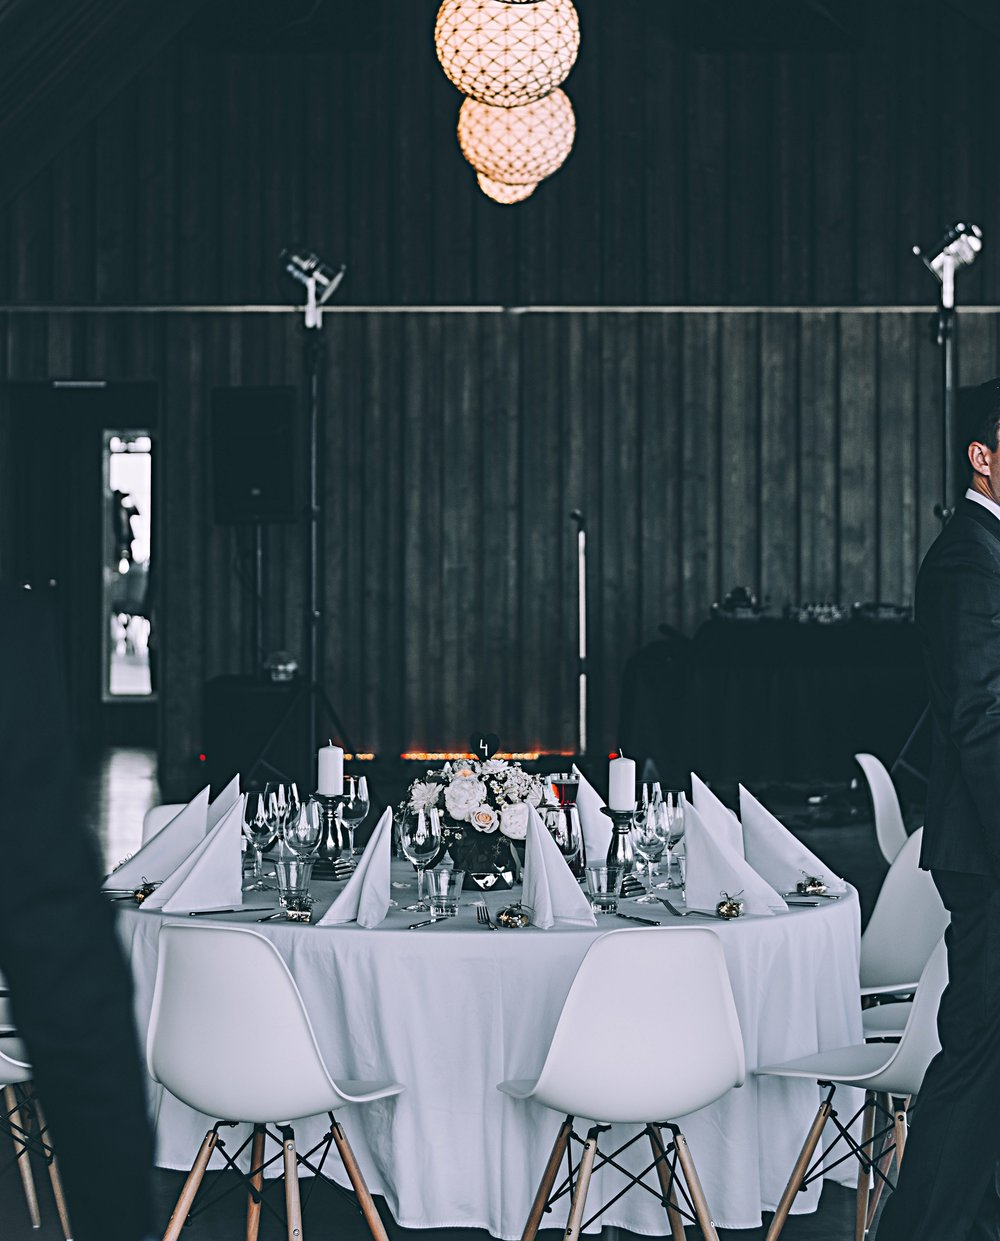 When planning a wedding  - we will ask anyone we encounter for tips or input